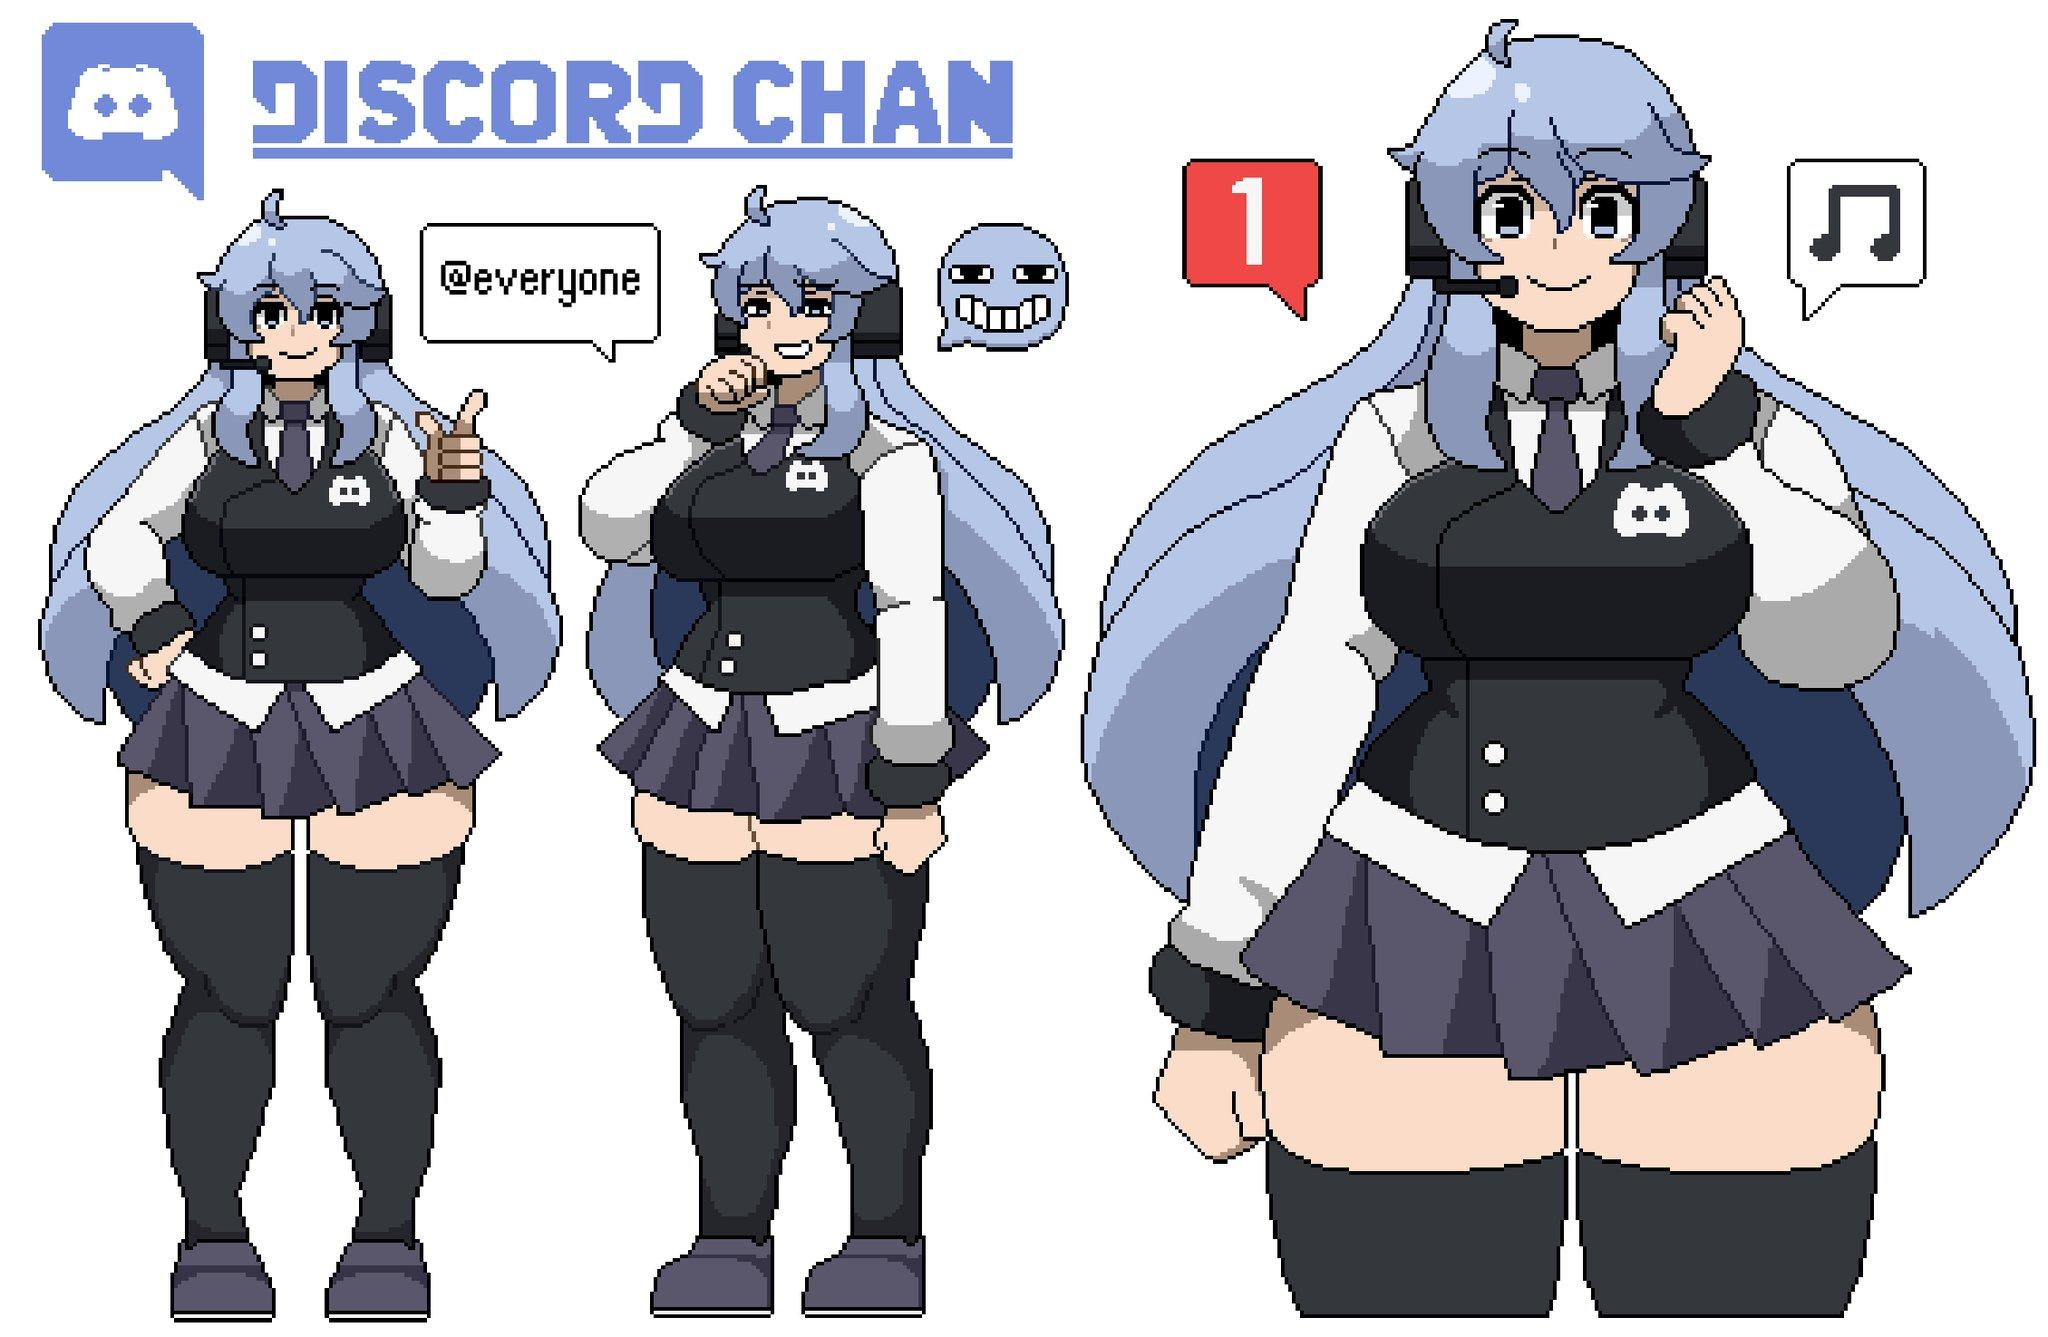 Discord Chan By Hollowgrimal Gijinka Moe Anthropomorphism Know Your Meme Does anyone know if twist.moe is still running i tried to get on the site today and it didnt load and i from twist.moe's discord server: discord chan by hollowgrimal gijinka